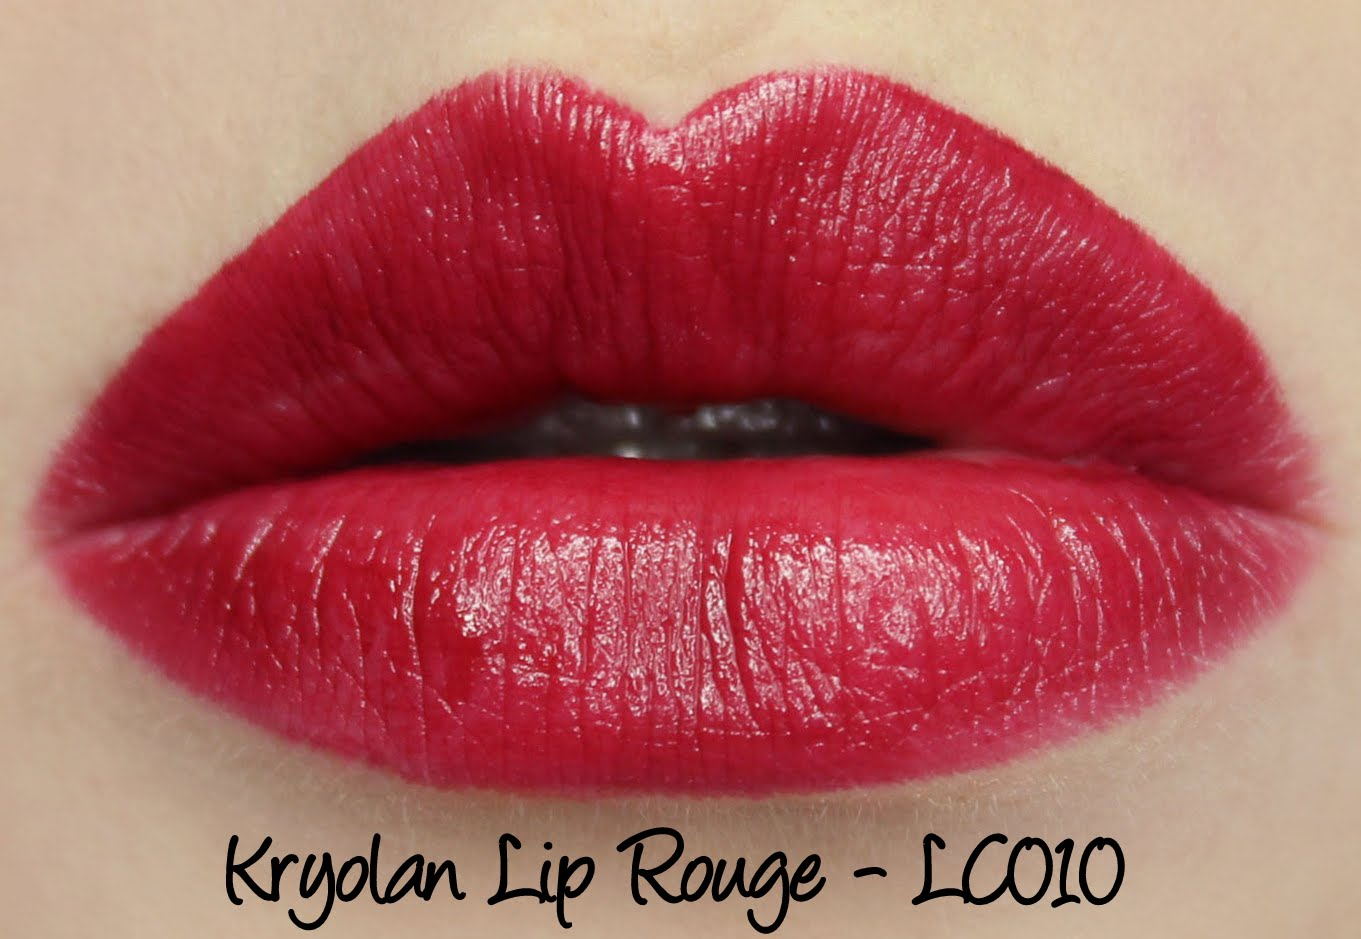 Kryolan Lip Rouge Classic Lipstick LC010 Swatches & Review